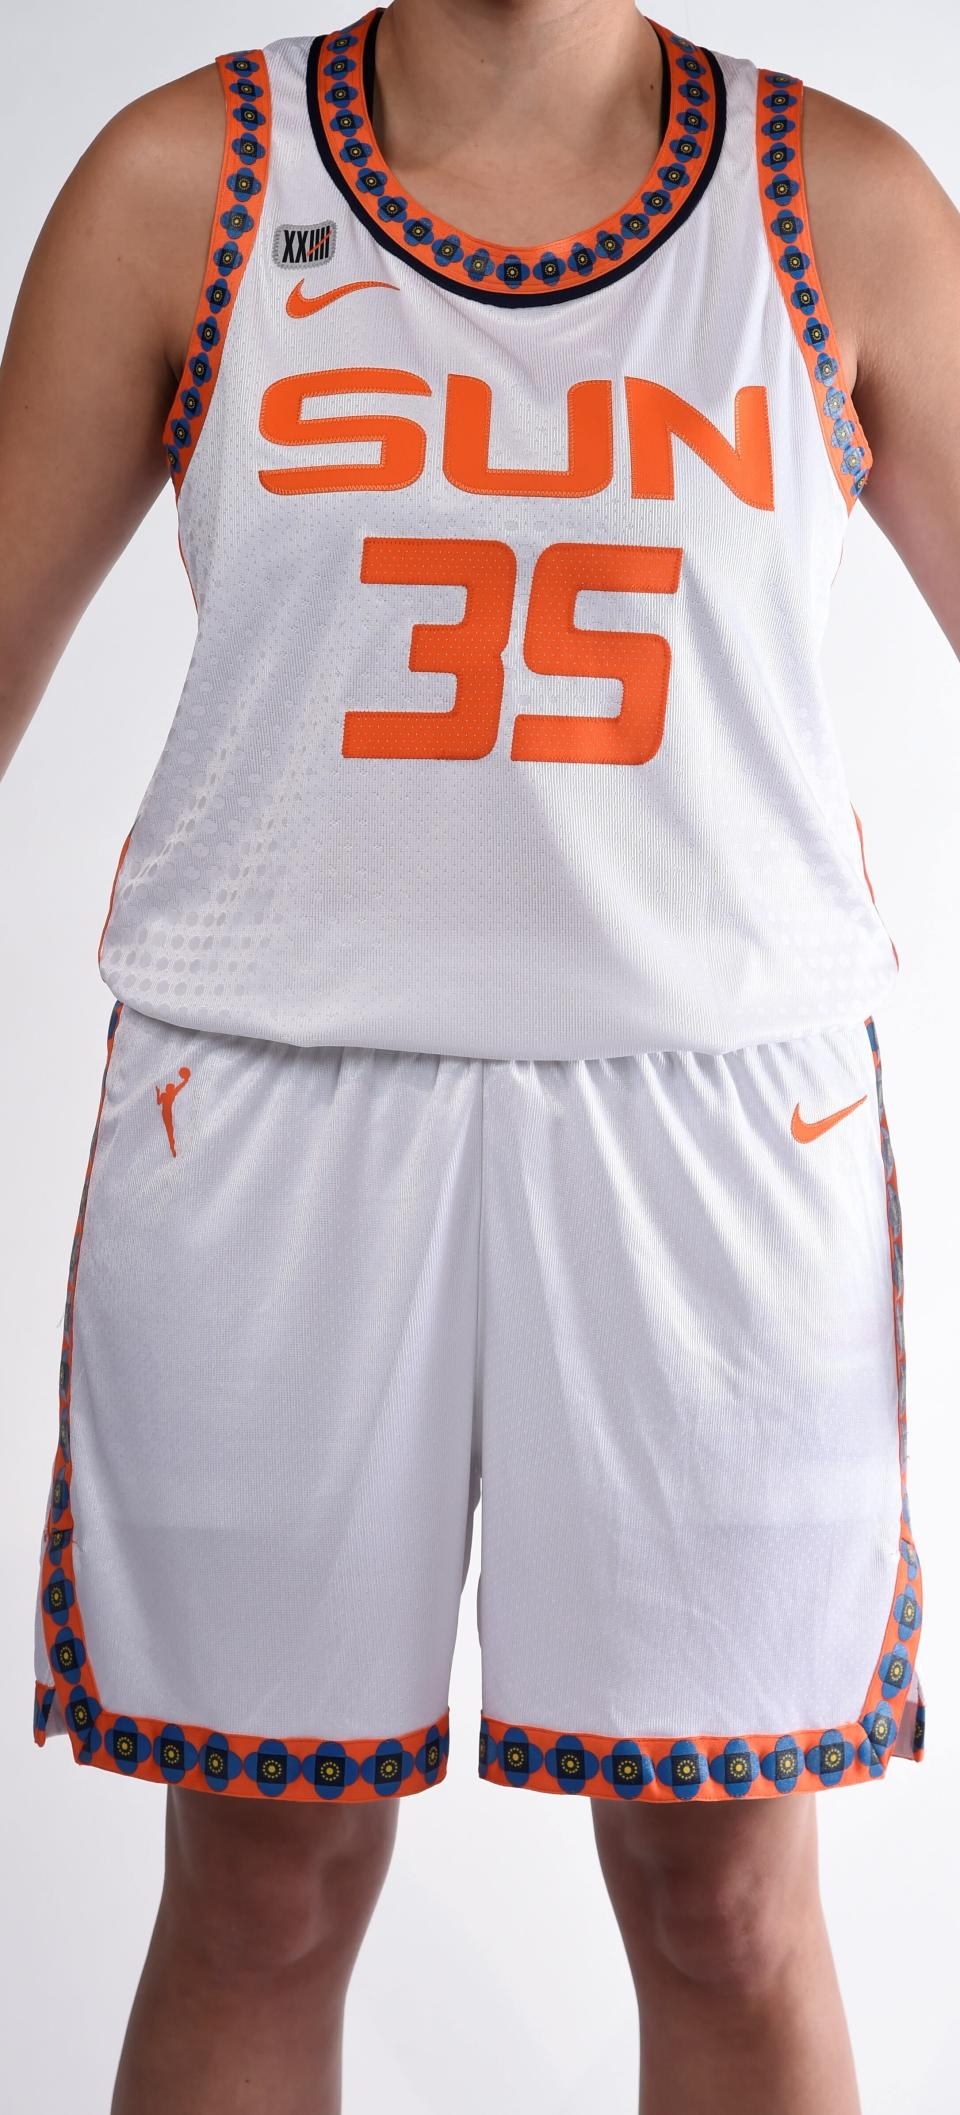 """This photo provided by Connecticut Sun on Thursday, April 8, 2021, shows the new Nike """"Heroine"""" edition uniform for the Connecticut Sun WNBA team. As numerous sports teams continue to come under fire for using Native American names and symbols, The Connecticut Sun is putting them on their new jerseys with the input of the team's owners—the Mohegan Indian tribe. (Connecticut Sun/Khoi Ton via AP)"""